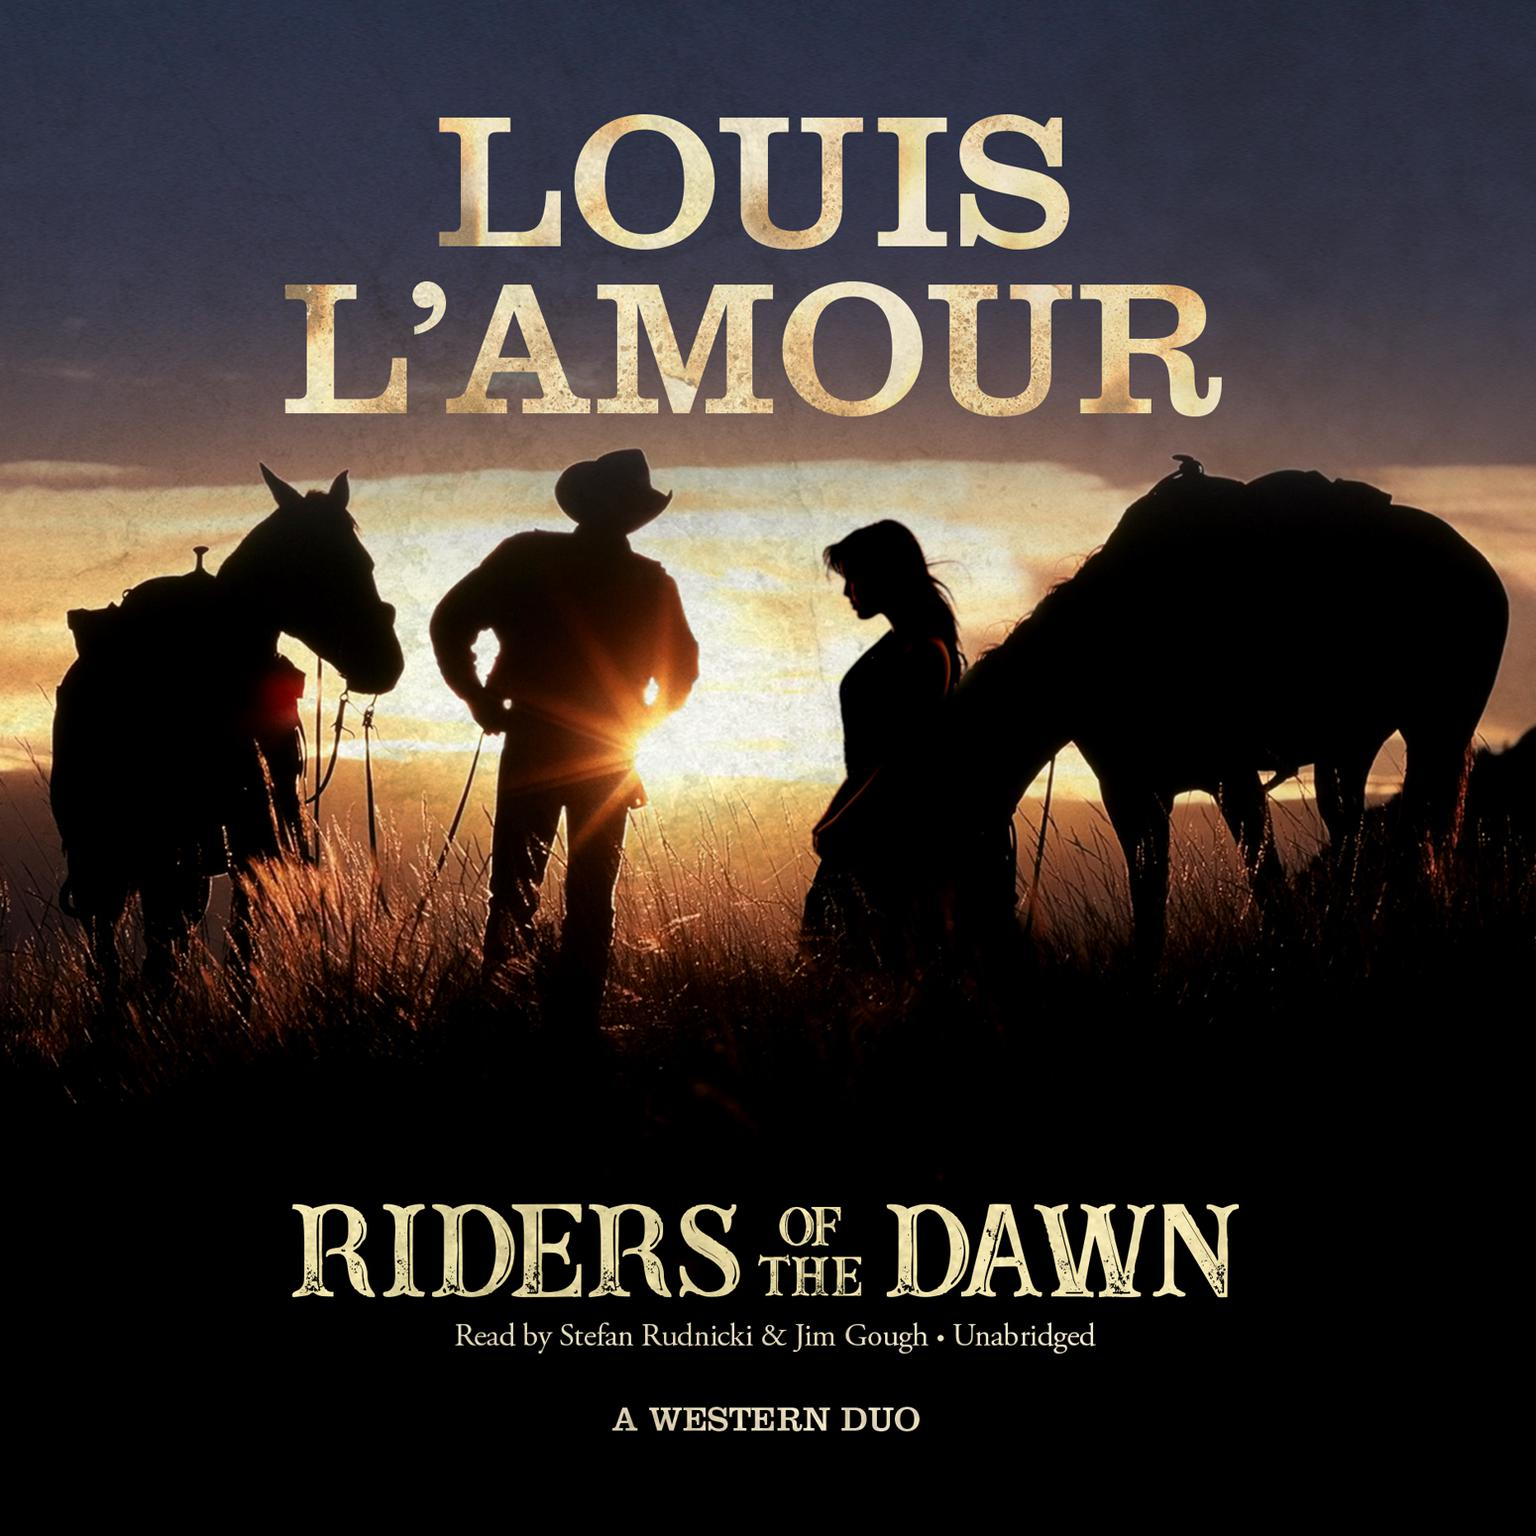 Riders of the Dawn: A Western Duo  Audiobook, by Louis L'Amour